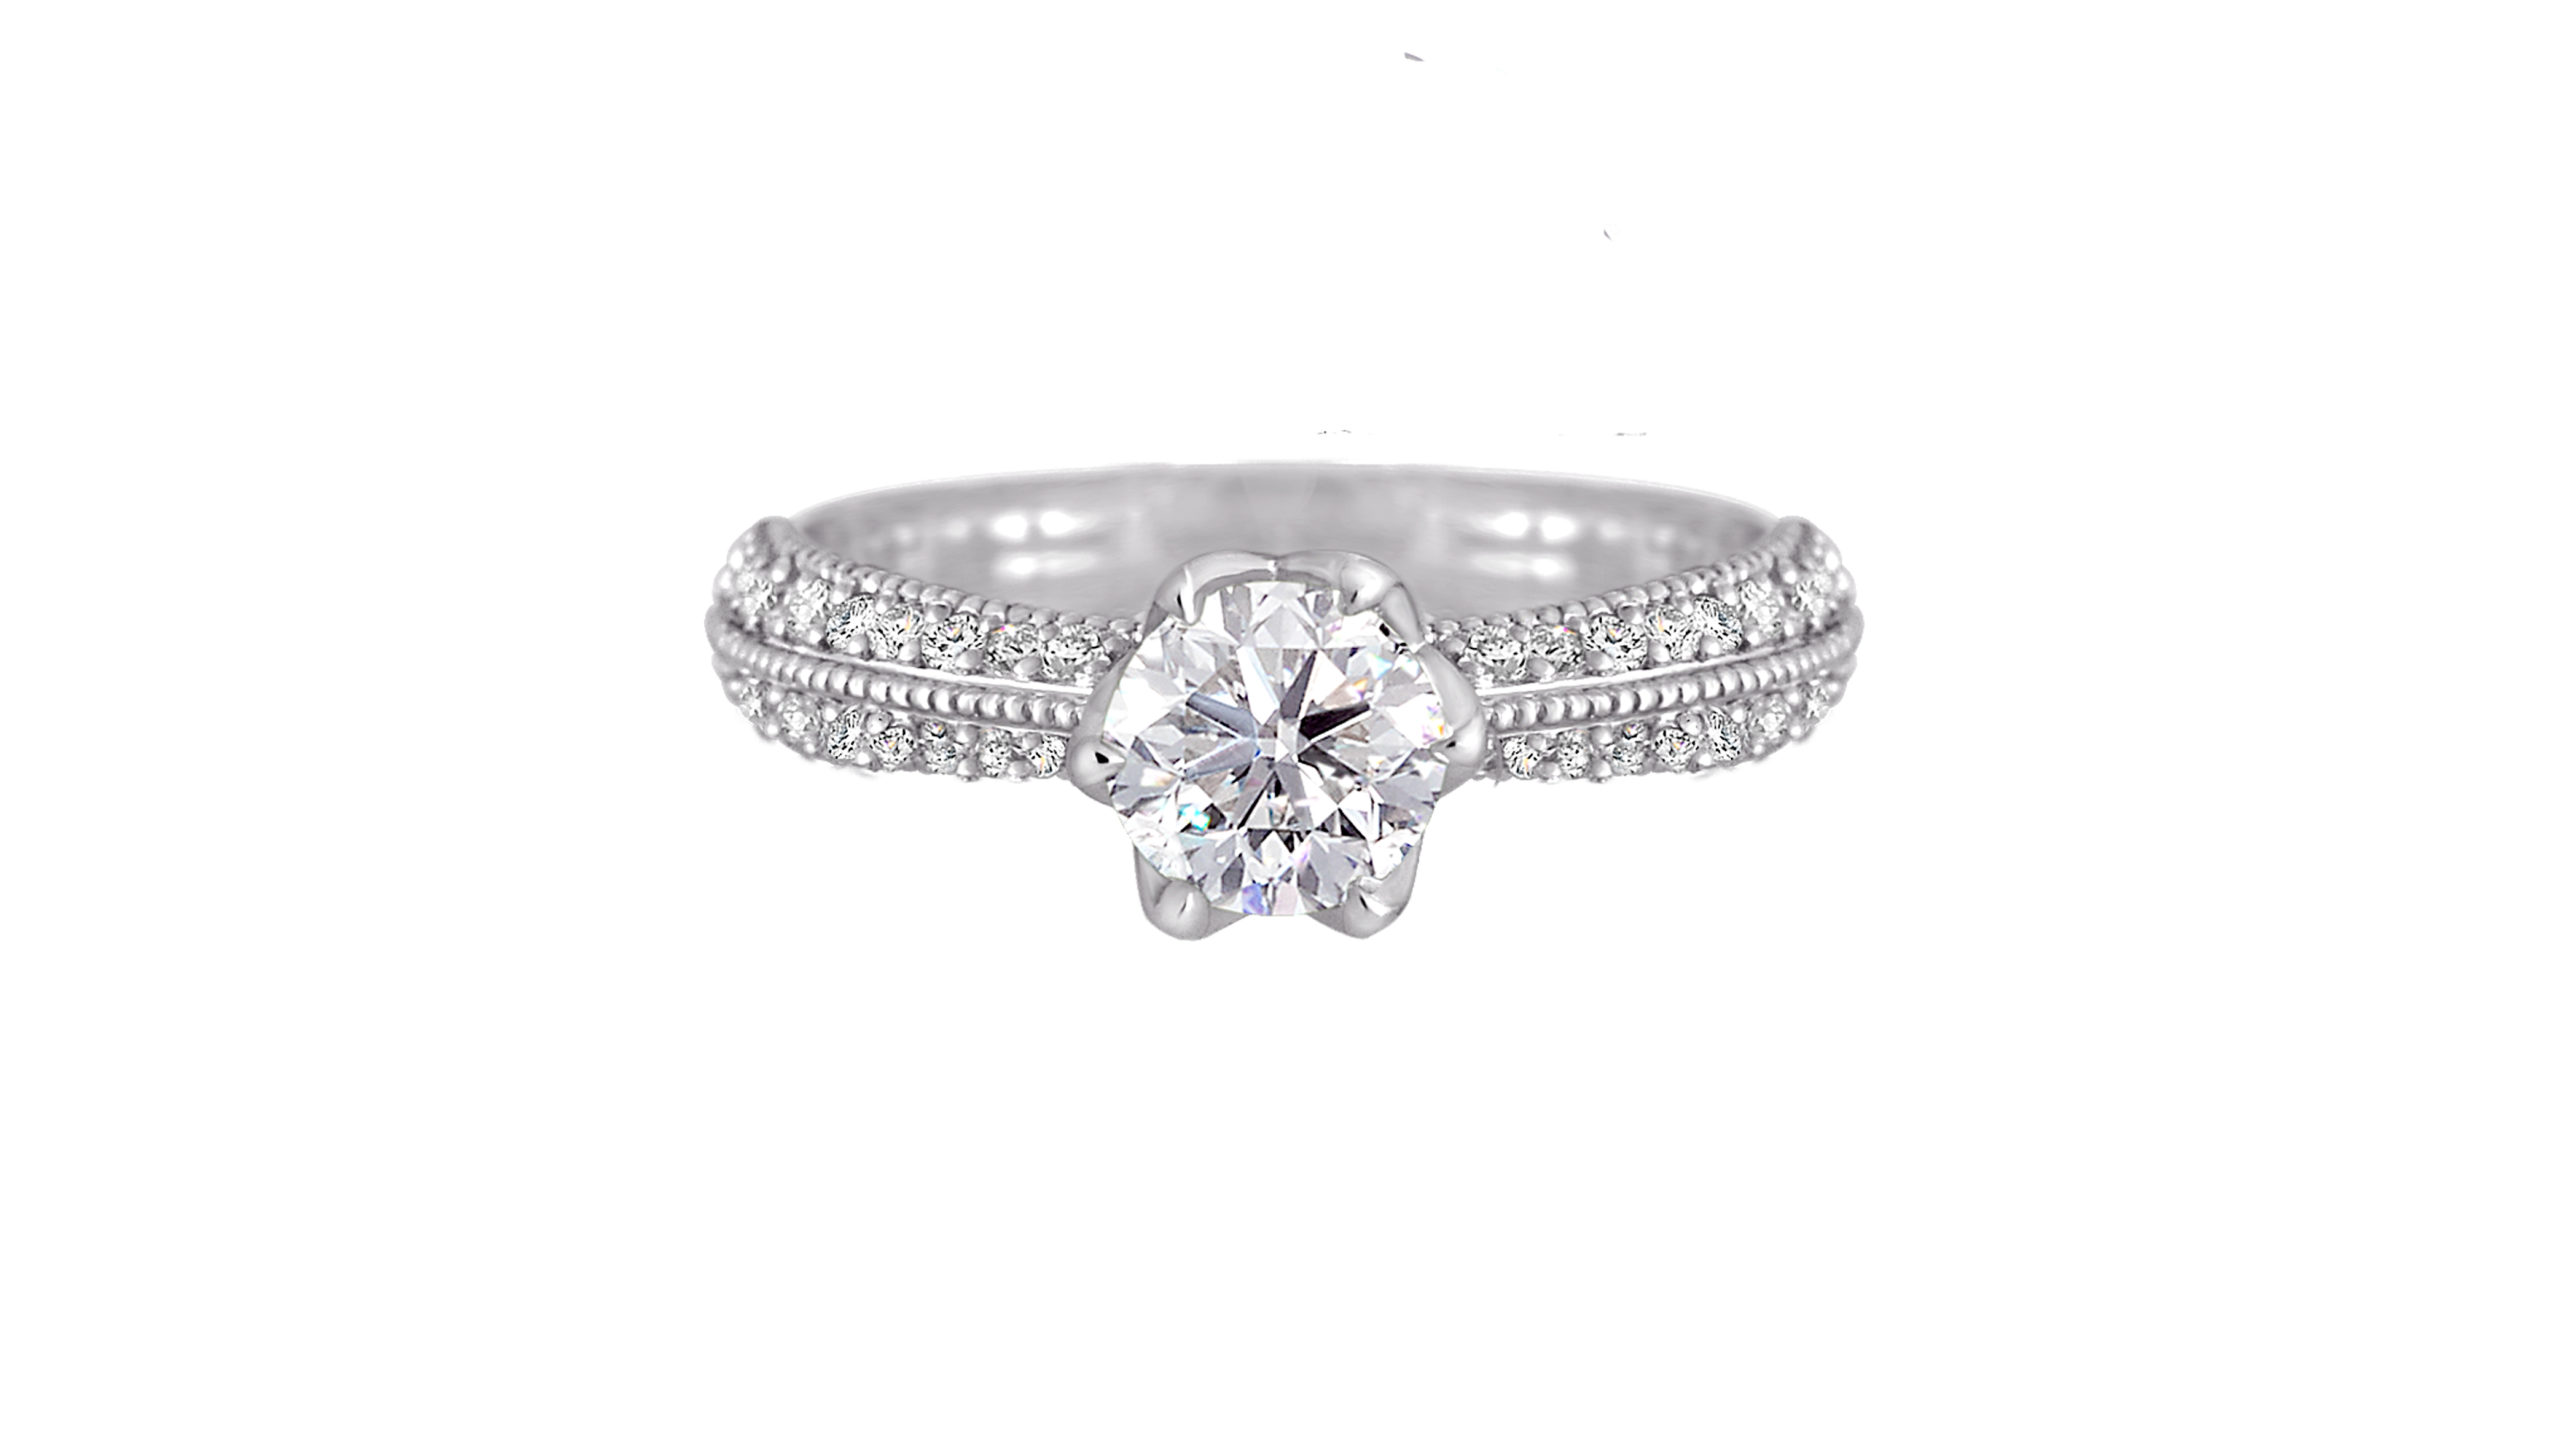 Tulip Ring | Diamond Ring in Platinum with diamonds down the band